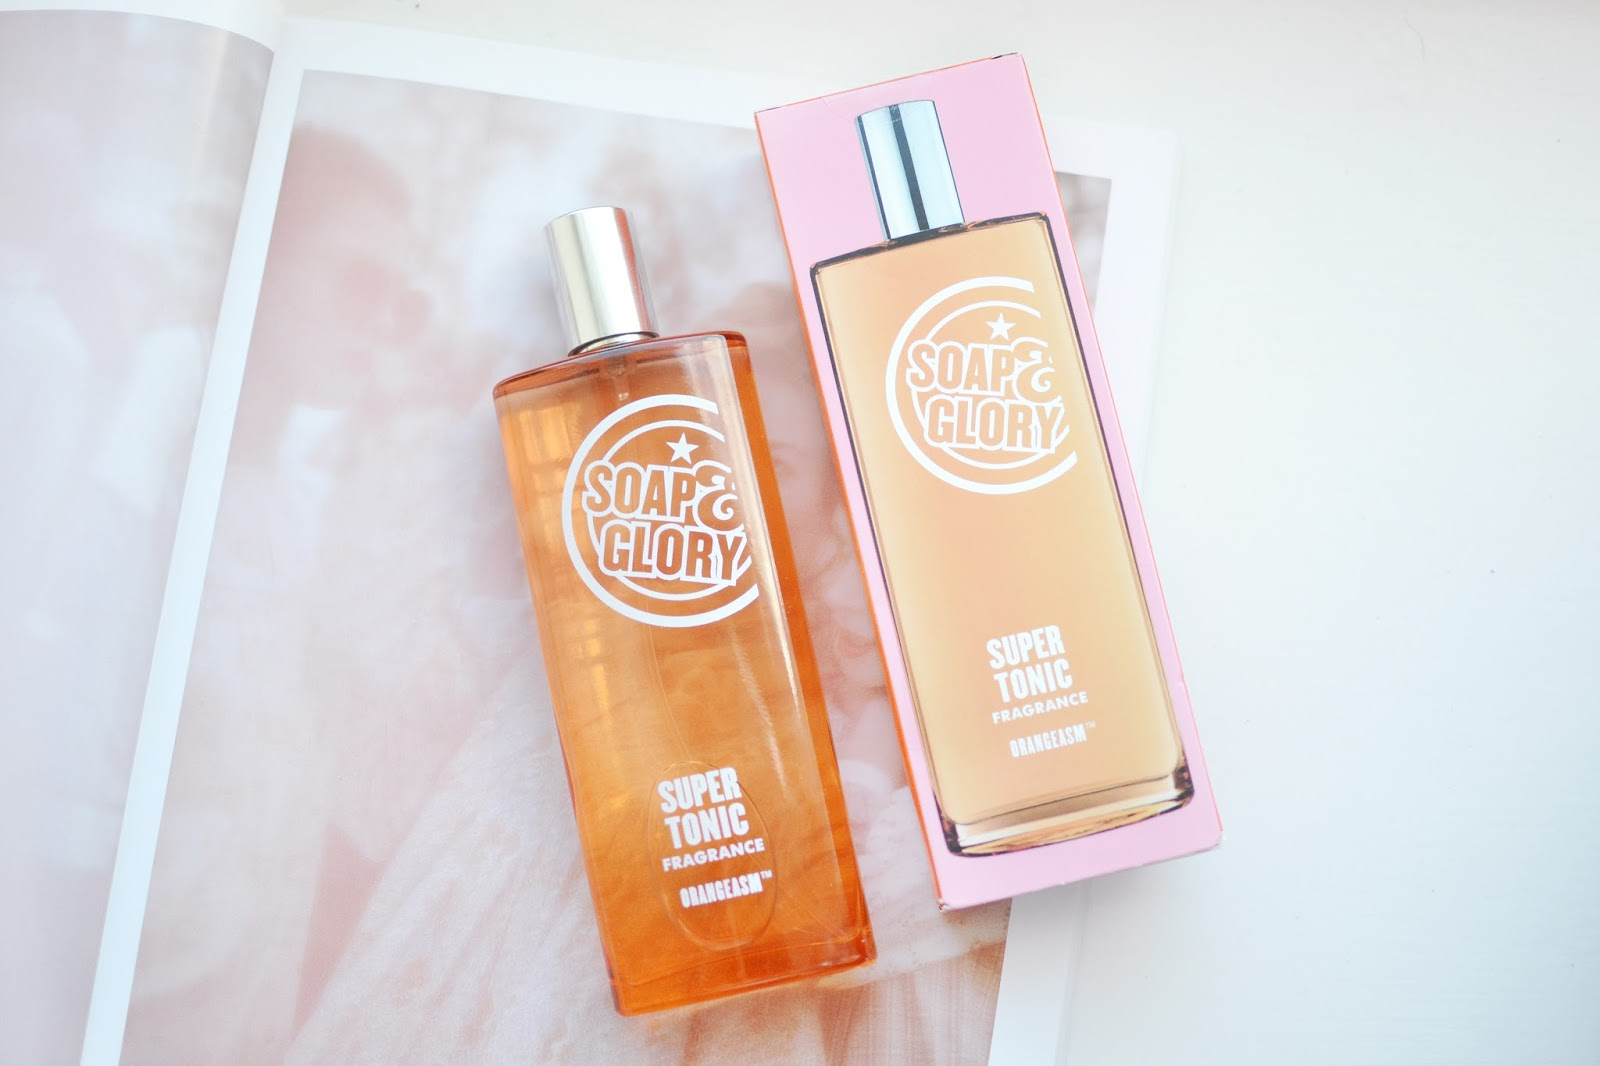 Soap&Glory ORANGEASM super tonic fragrance review